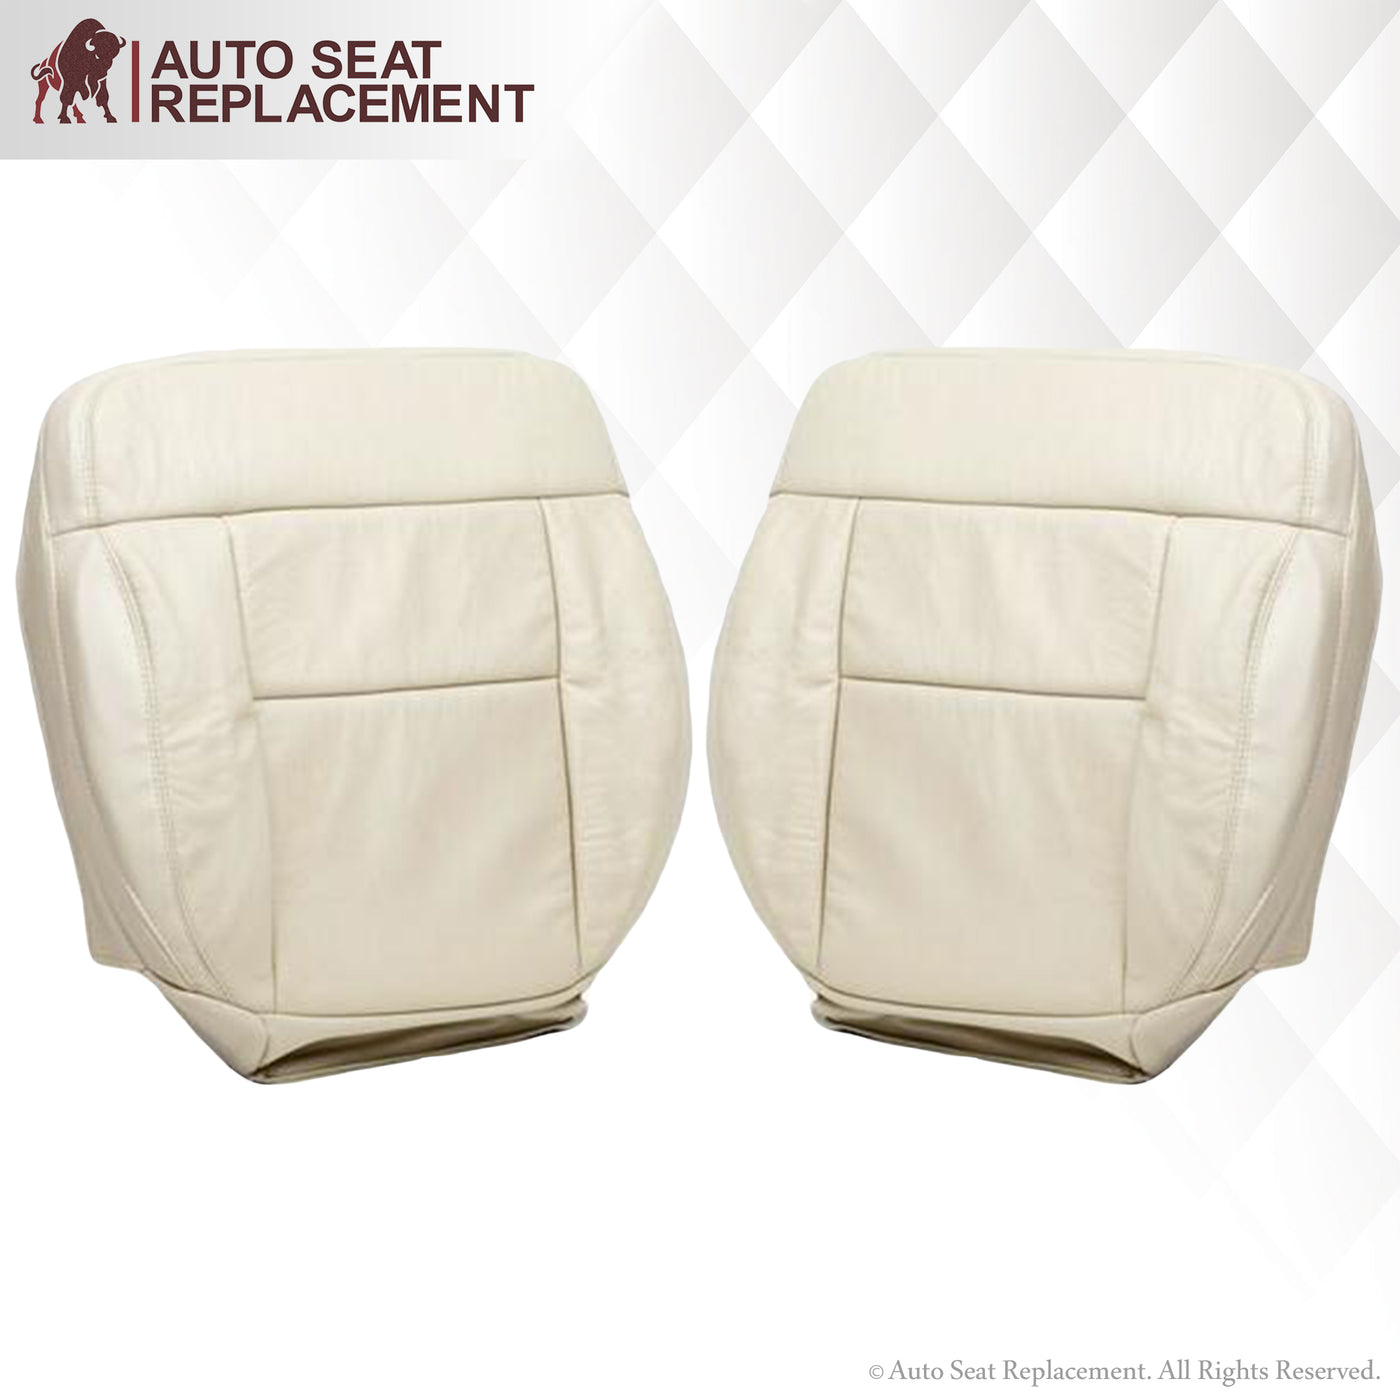 Heated 2004 Ford F150 Driver Bottom Replacement Leather Seat Cover Light Tan